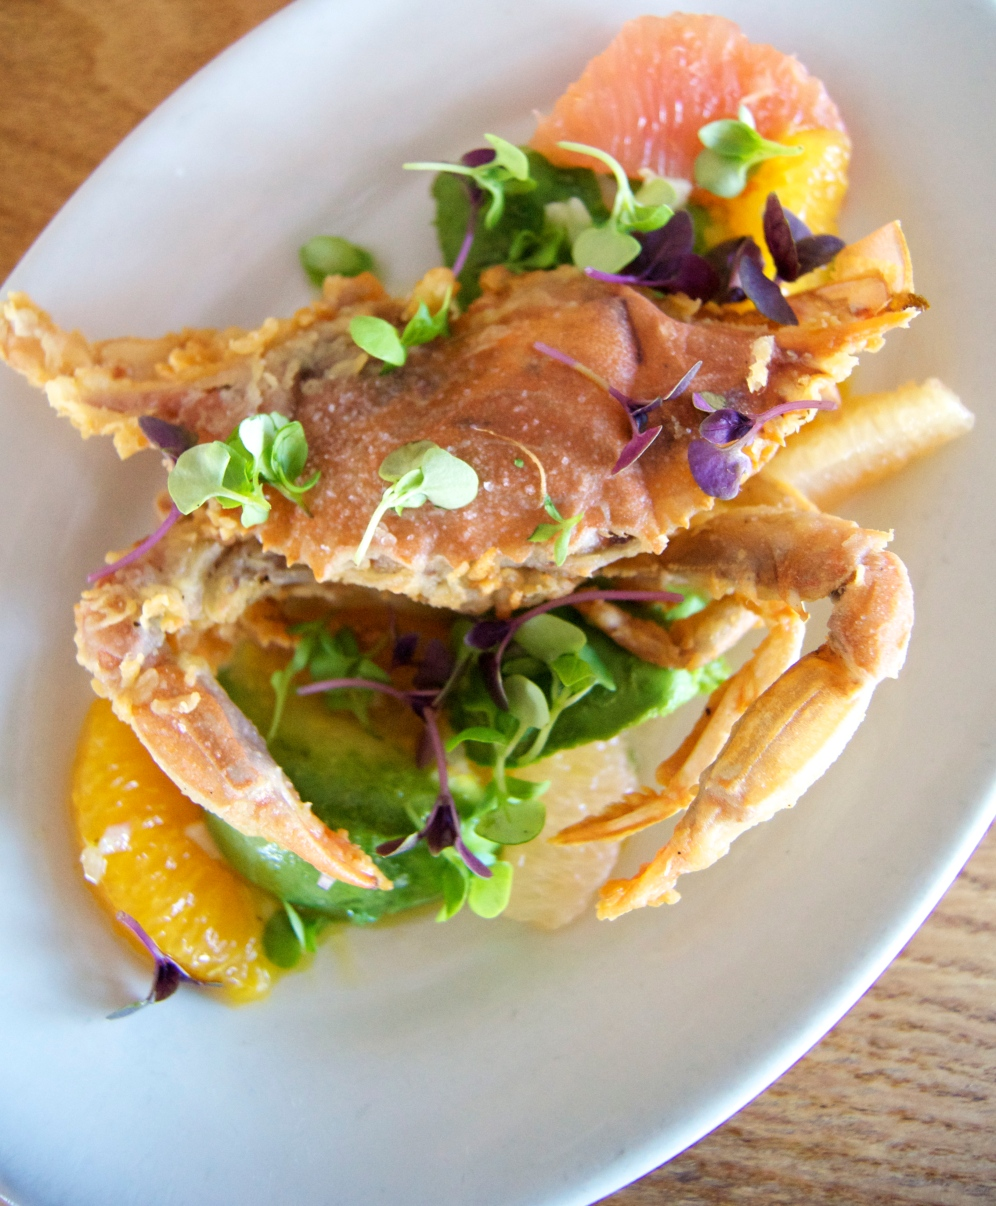 soft shell crab with citrus, avocado, and aioli